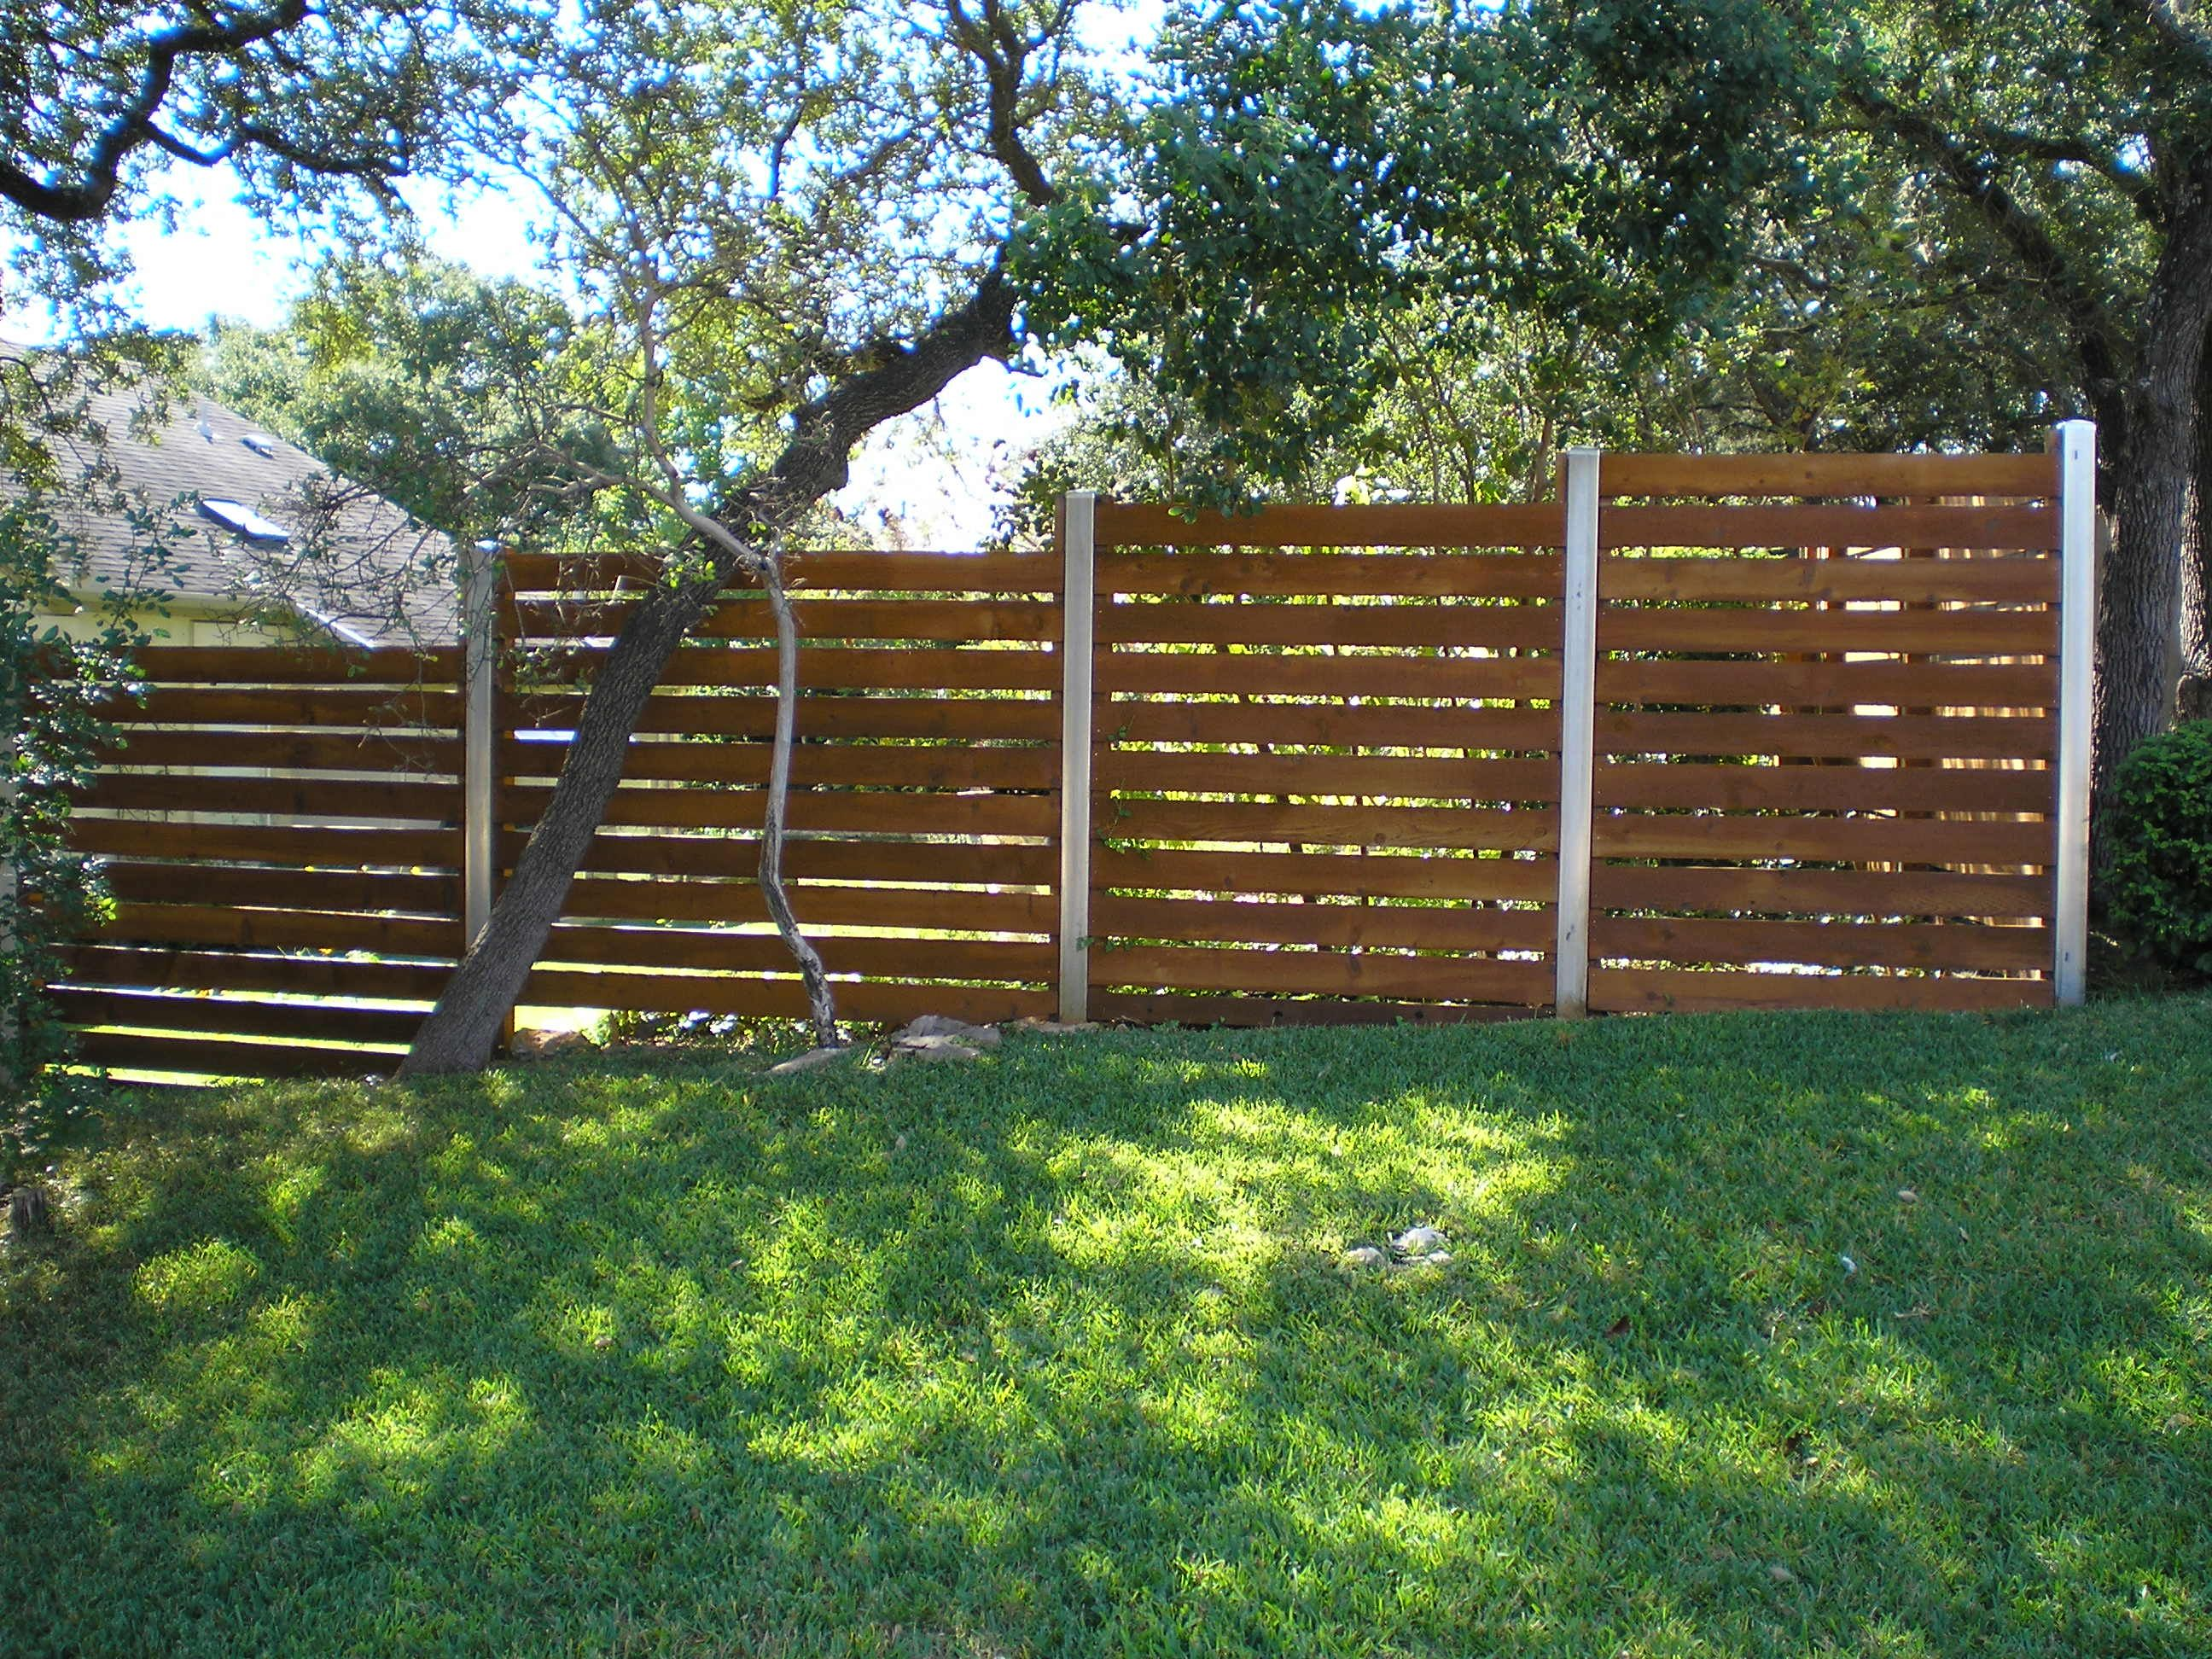 Wood Fences Gallery Viking Fence Horizontal Semi Privacy With Square Galvanized Posts Steel 2 Modern Fence Design Privacy Fence Designs Fence Design